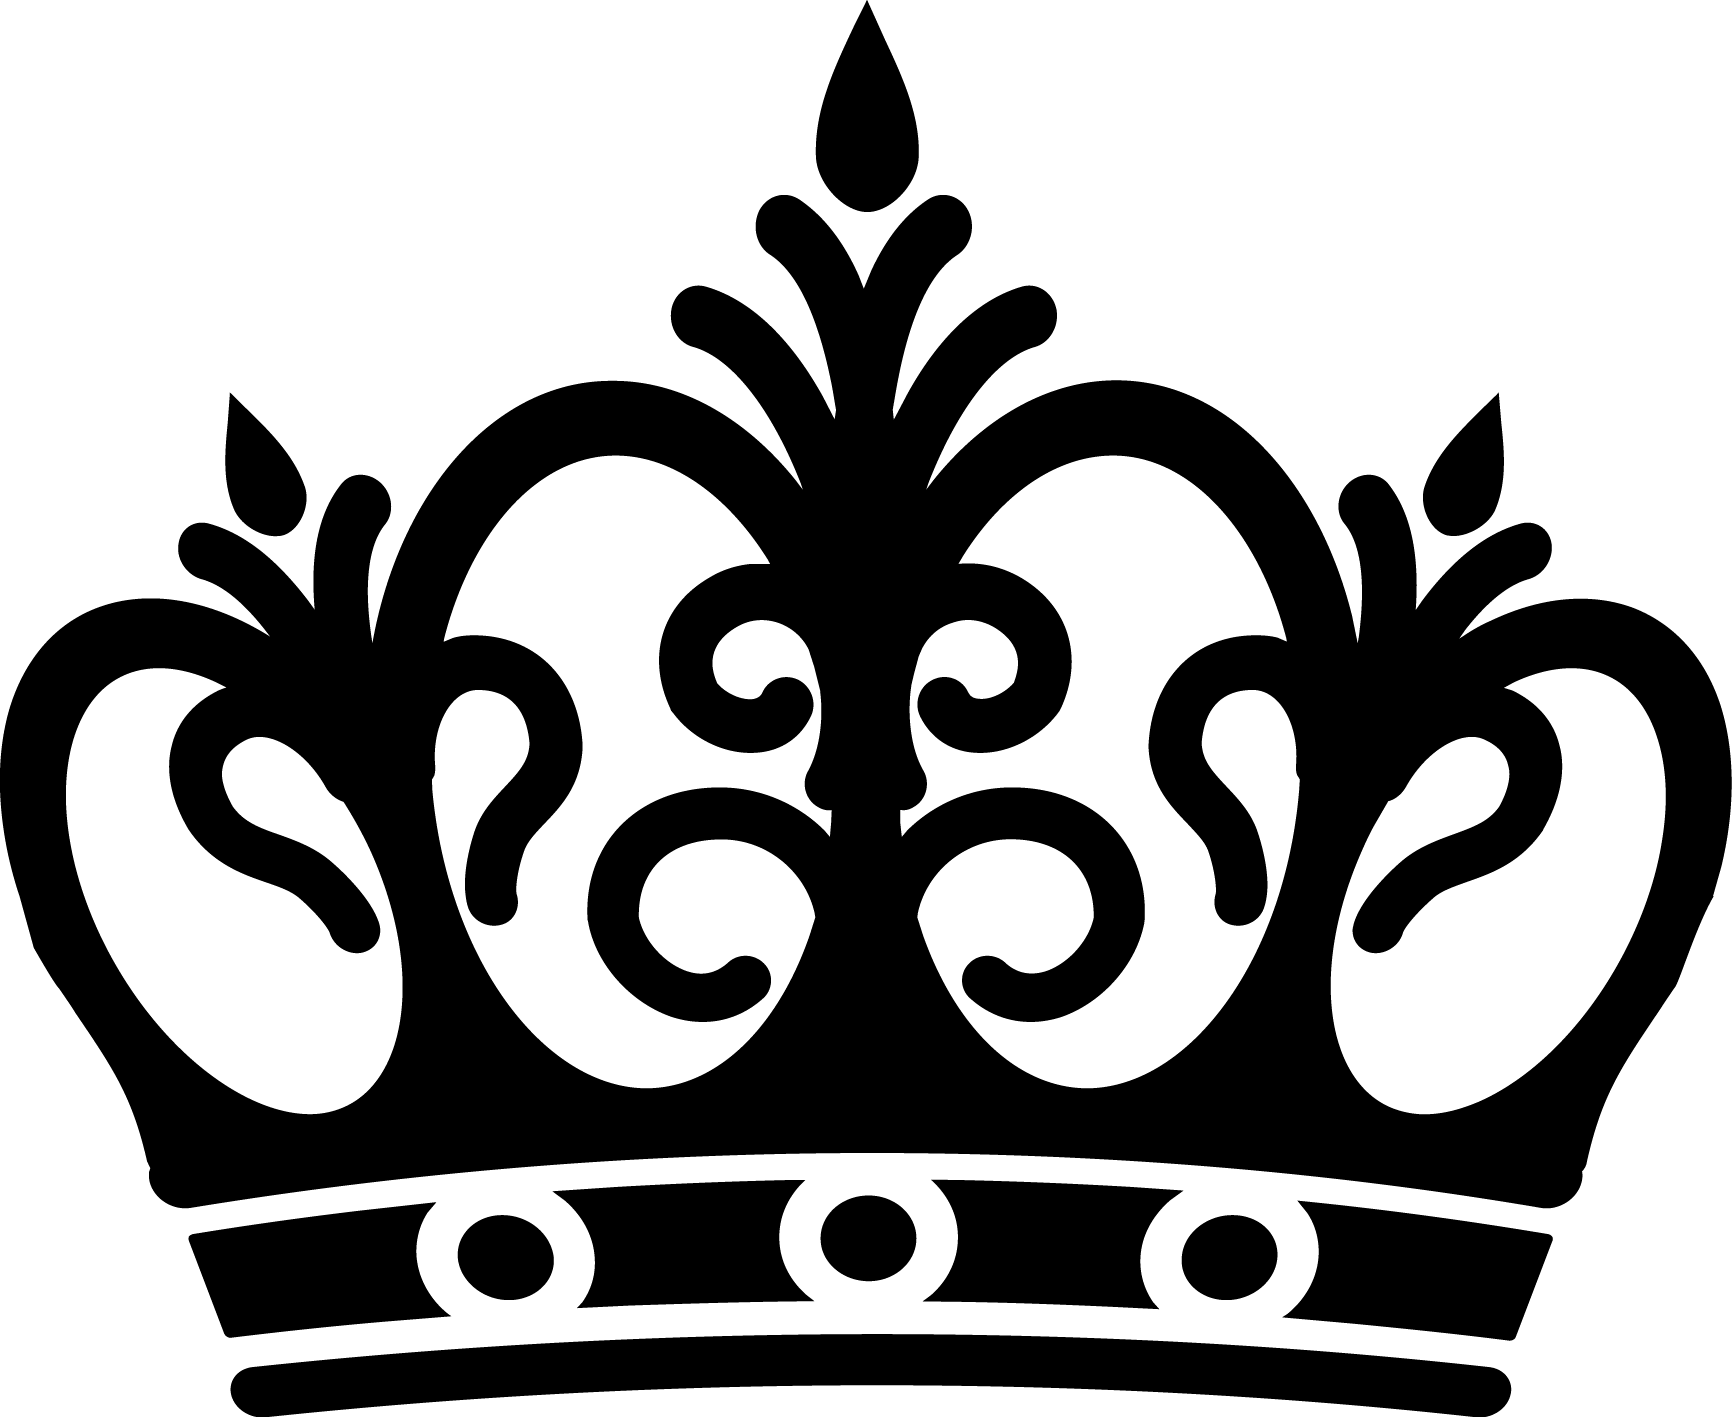 crown vector png - Buscar con Google | Tatuajes | Pinterest | Crown ... clip royalty free stock